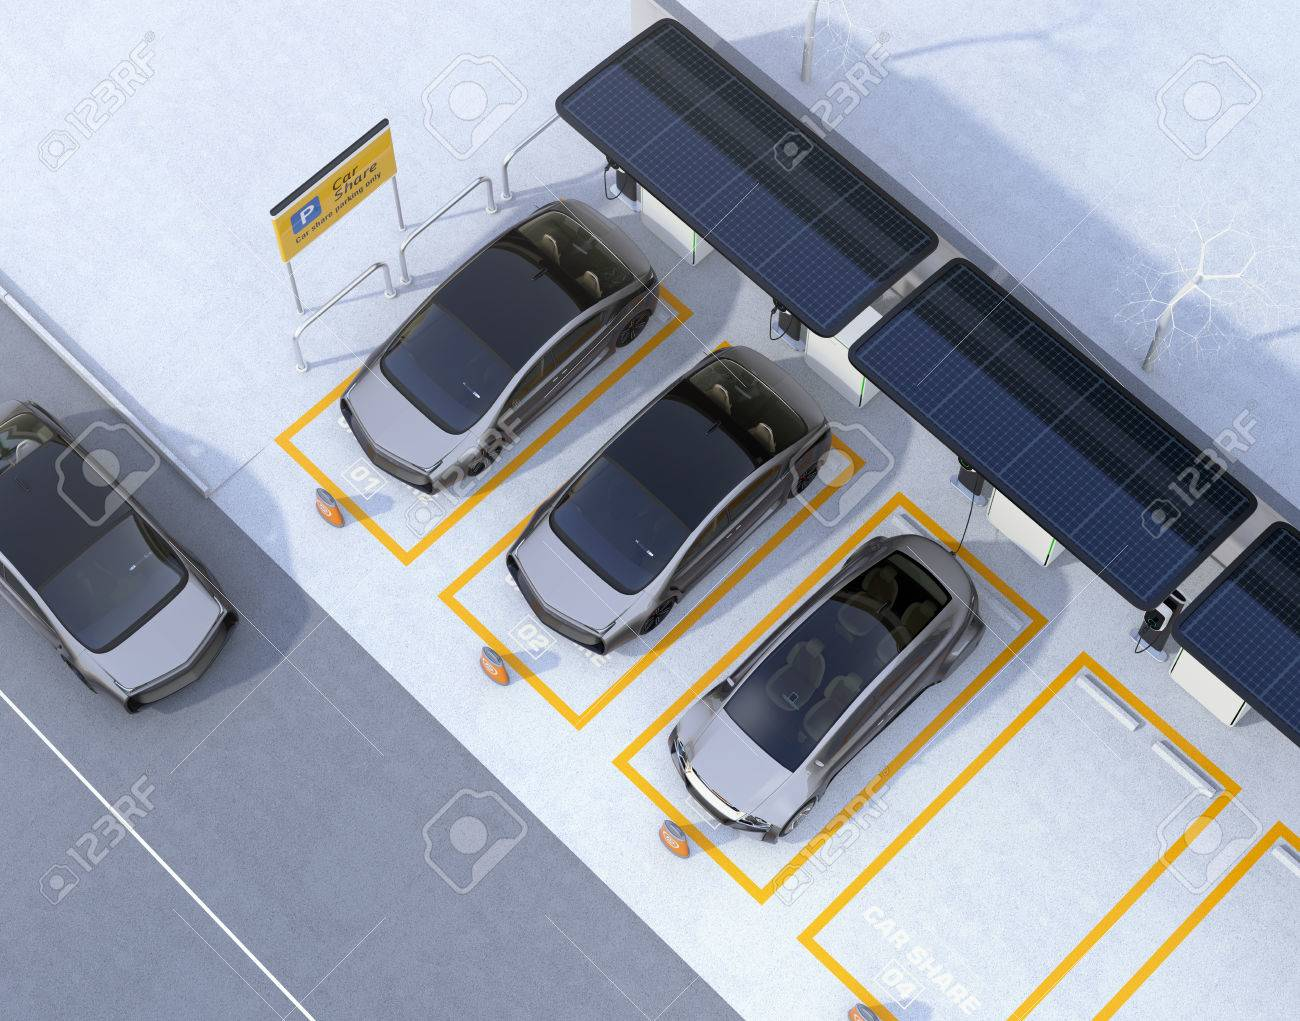 Aerial view of parking lot for car sharing business  Electric